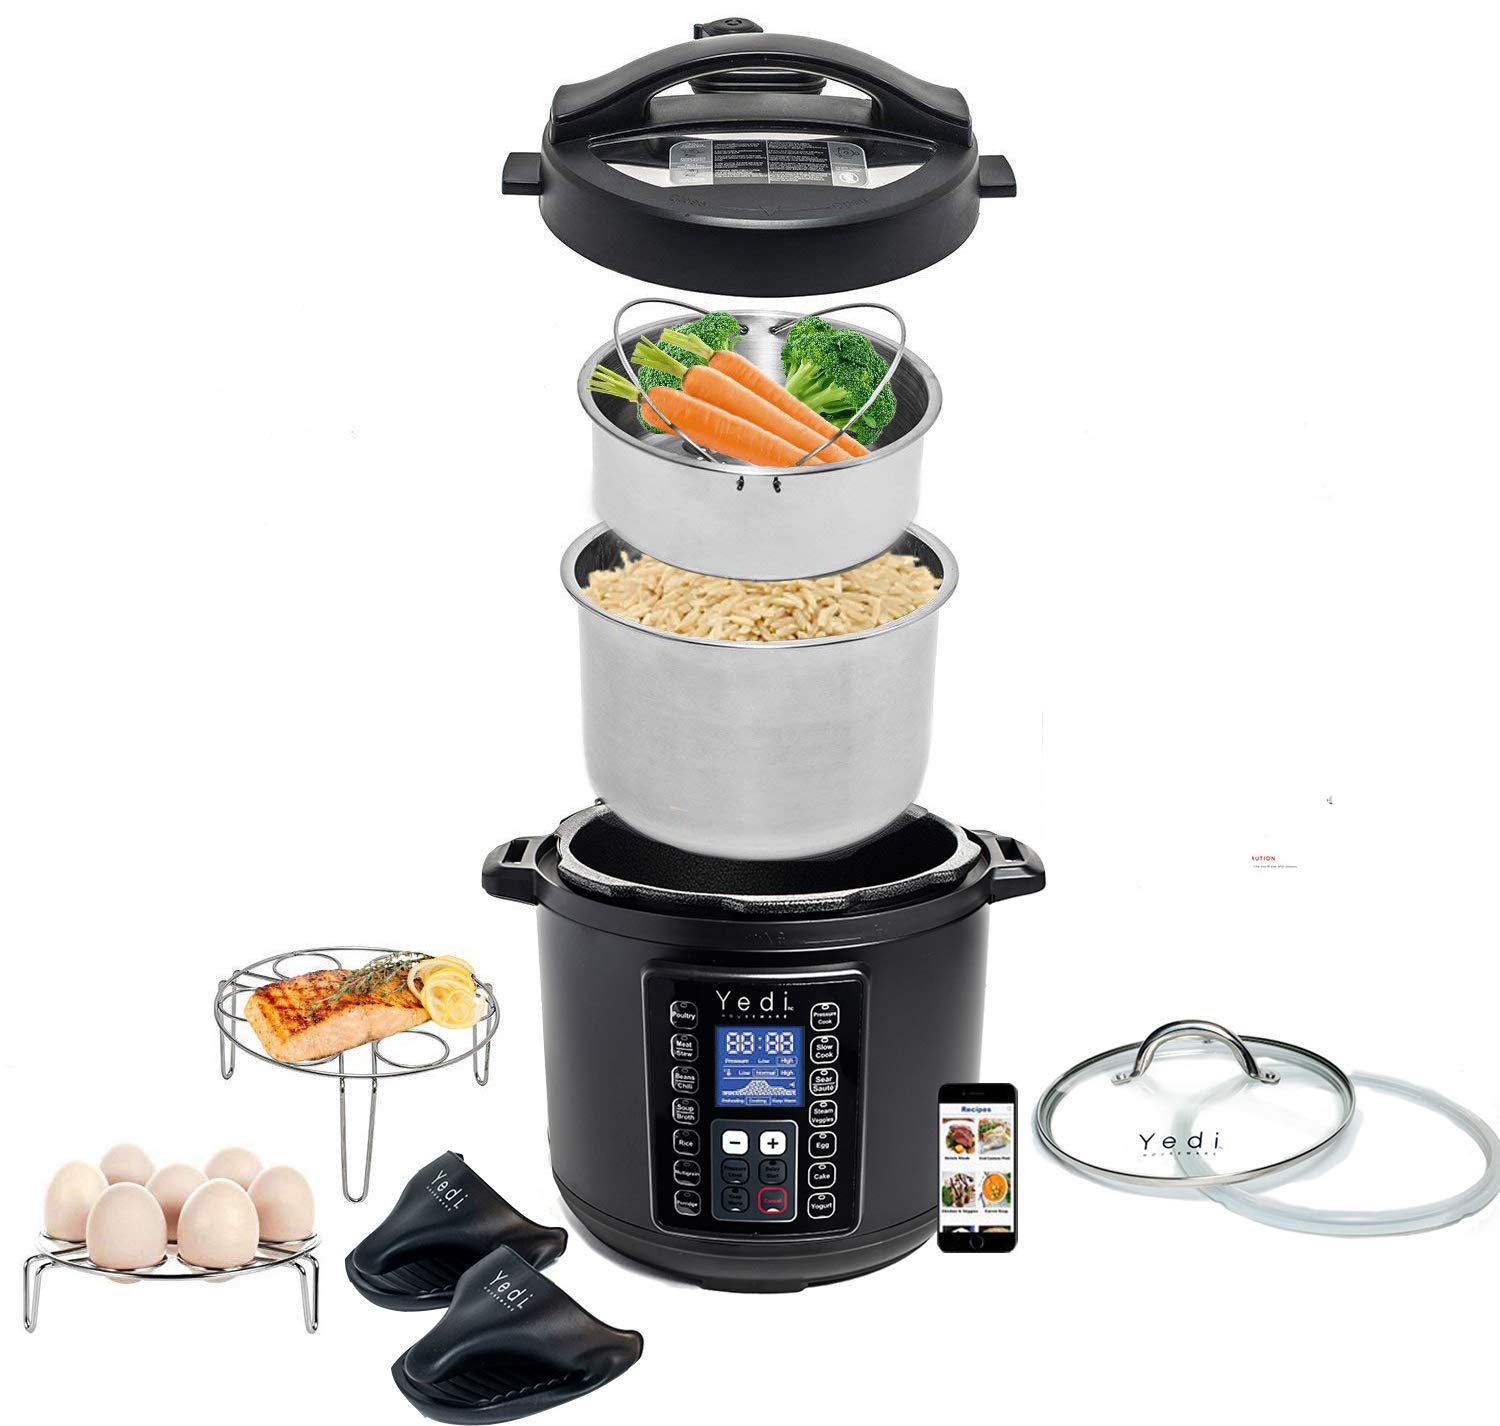 Total Package 9-in-1 Black Instant Programmable Pressure Cooker, with Endless Recipes and Deluxe Accessory Kit by Yedi Houseware (6 Qt)